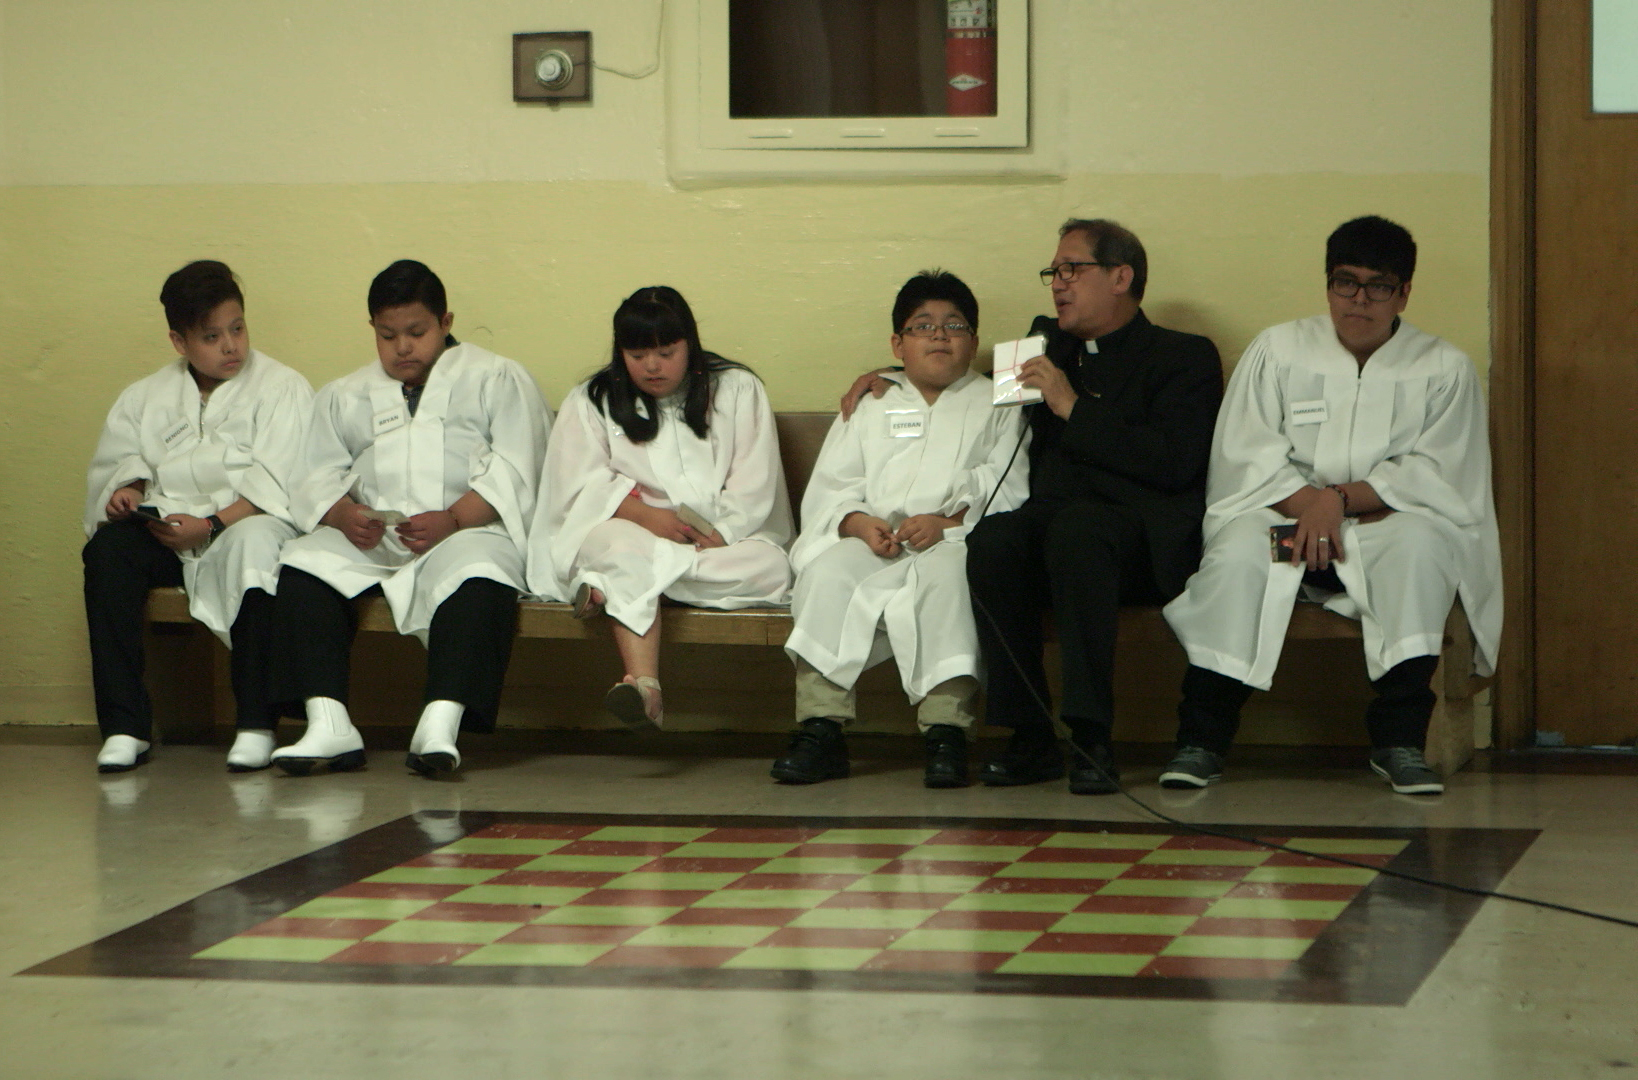 Bishop Solis met with youth prior to celebrating the Confirmation Mass.